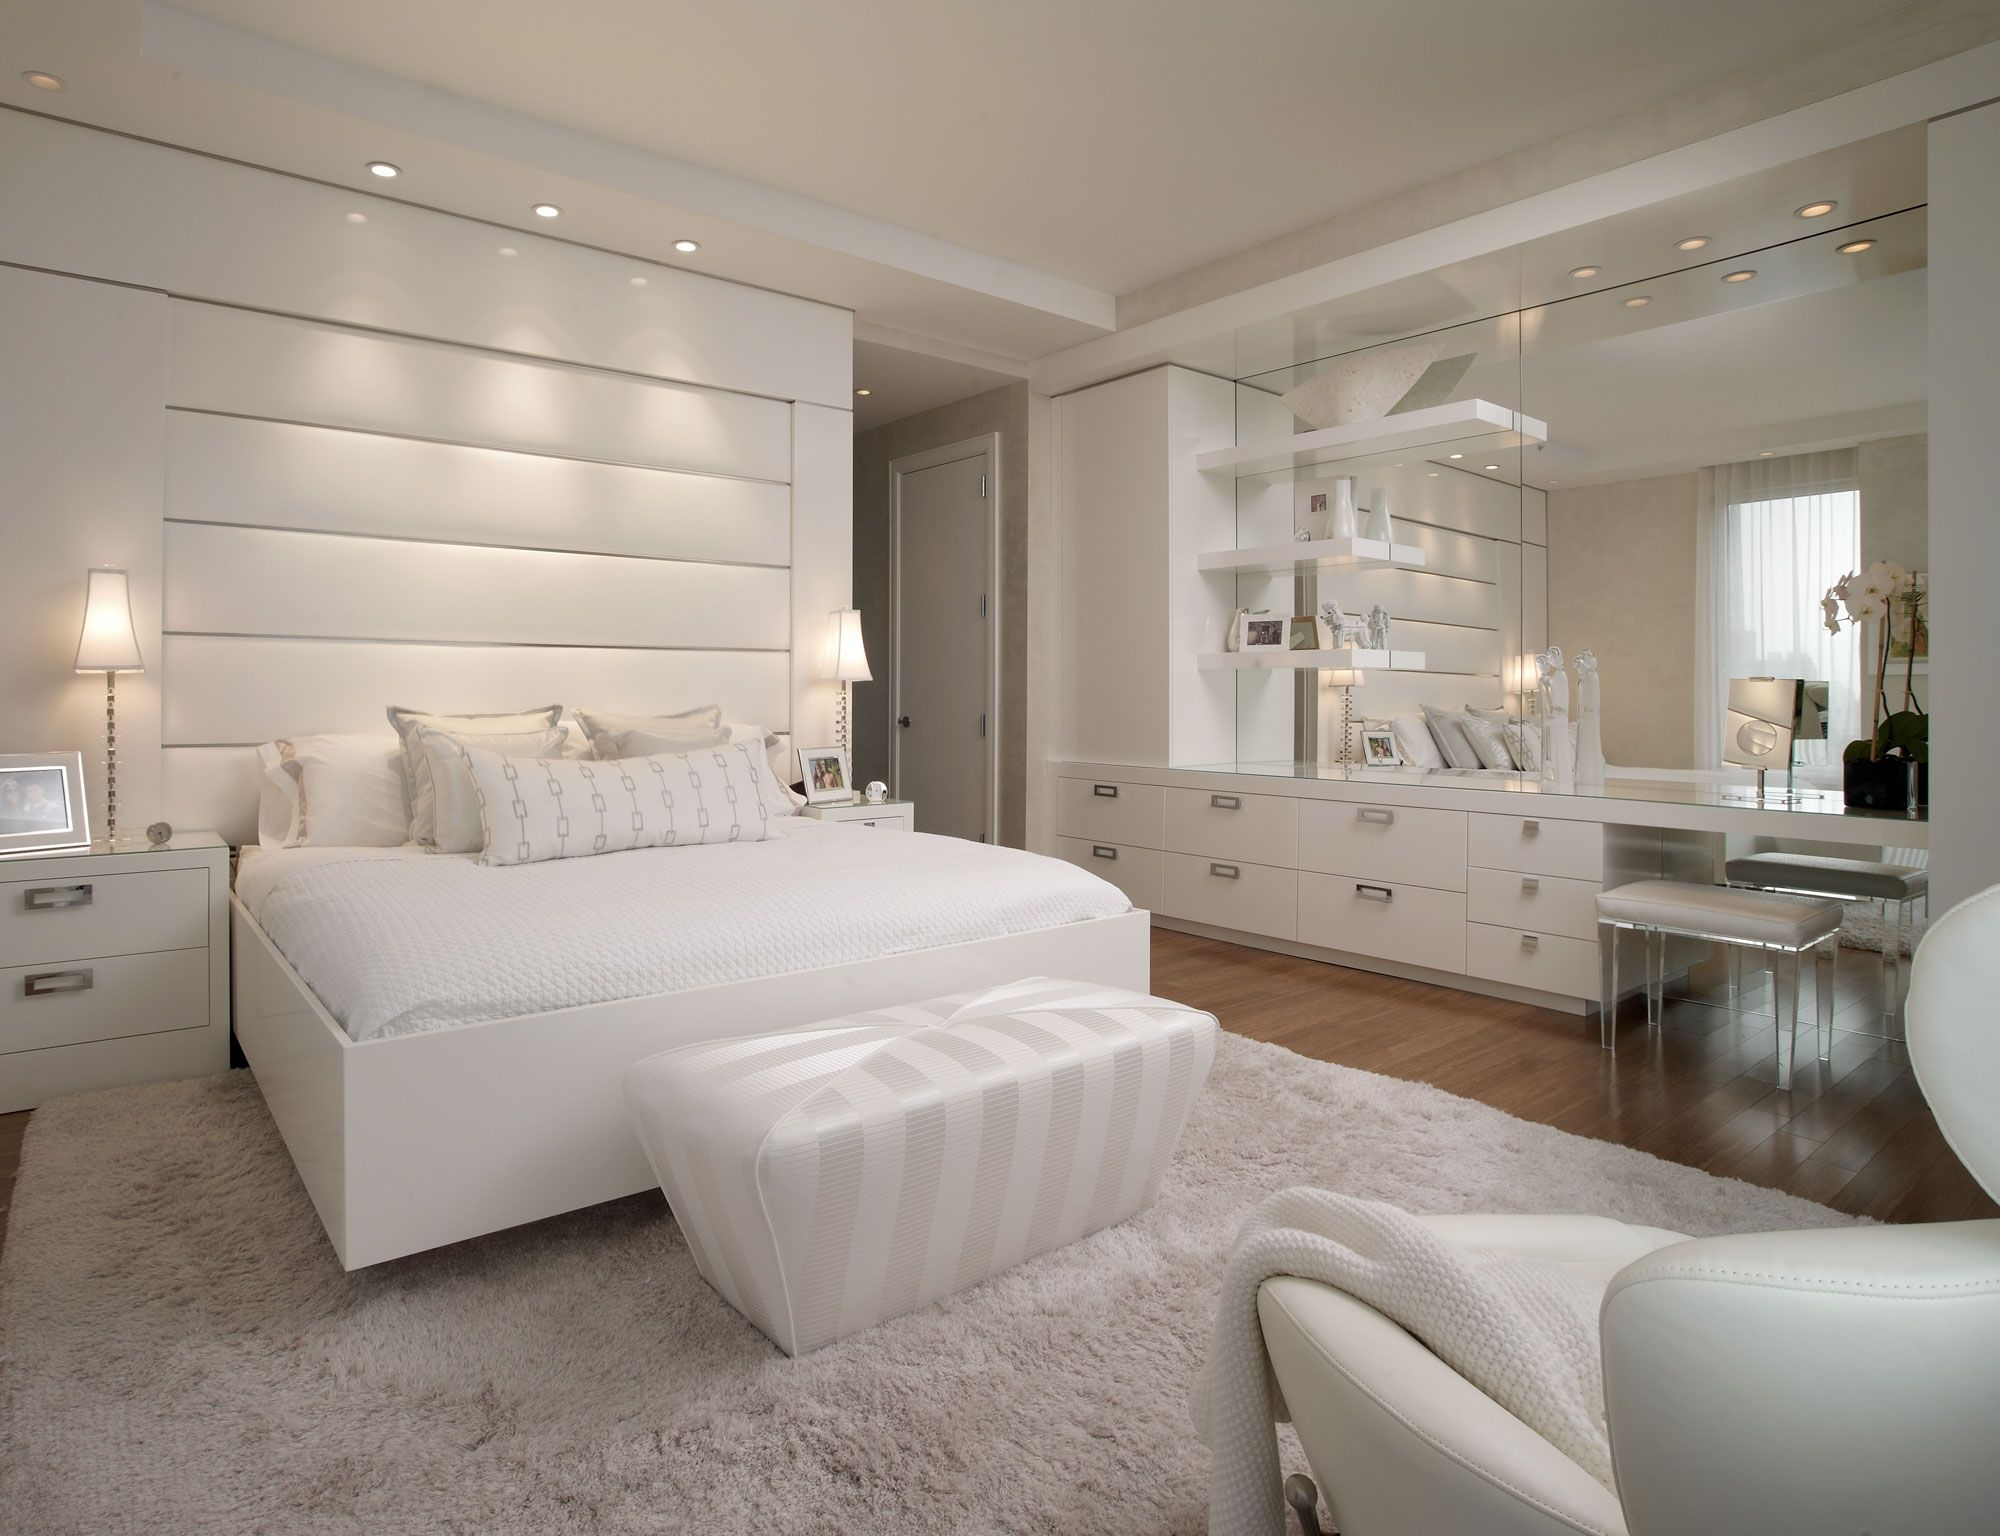 Luxury all white bedroom decorating ideas amazing for Bedroom designs white